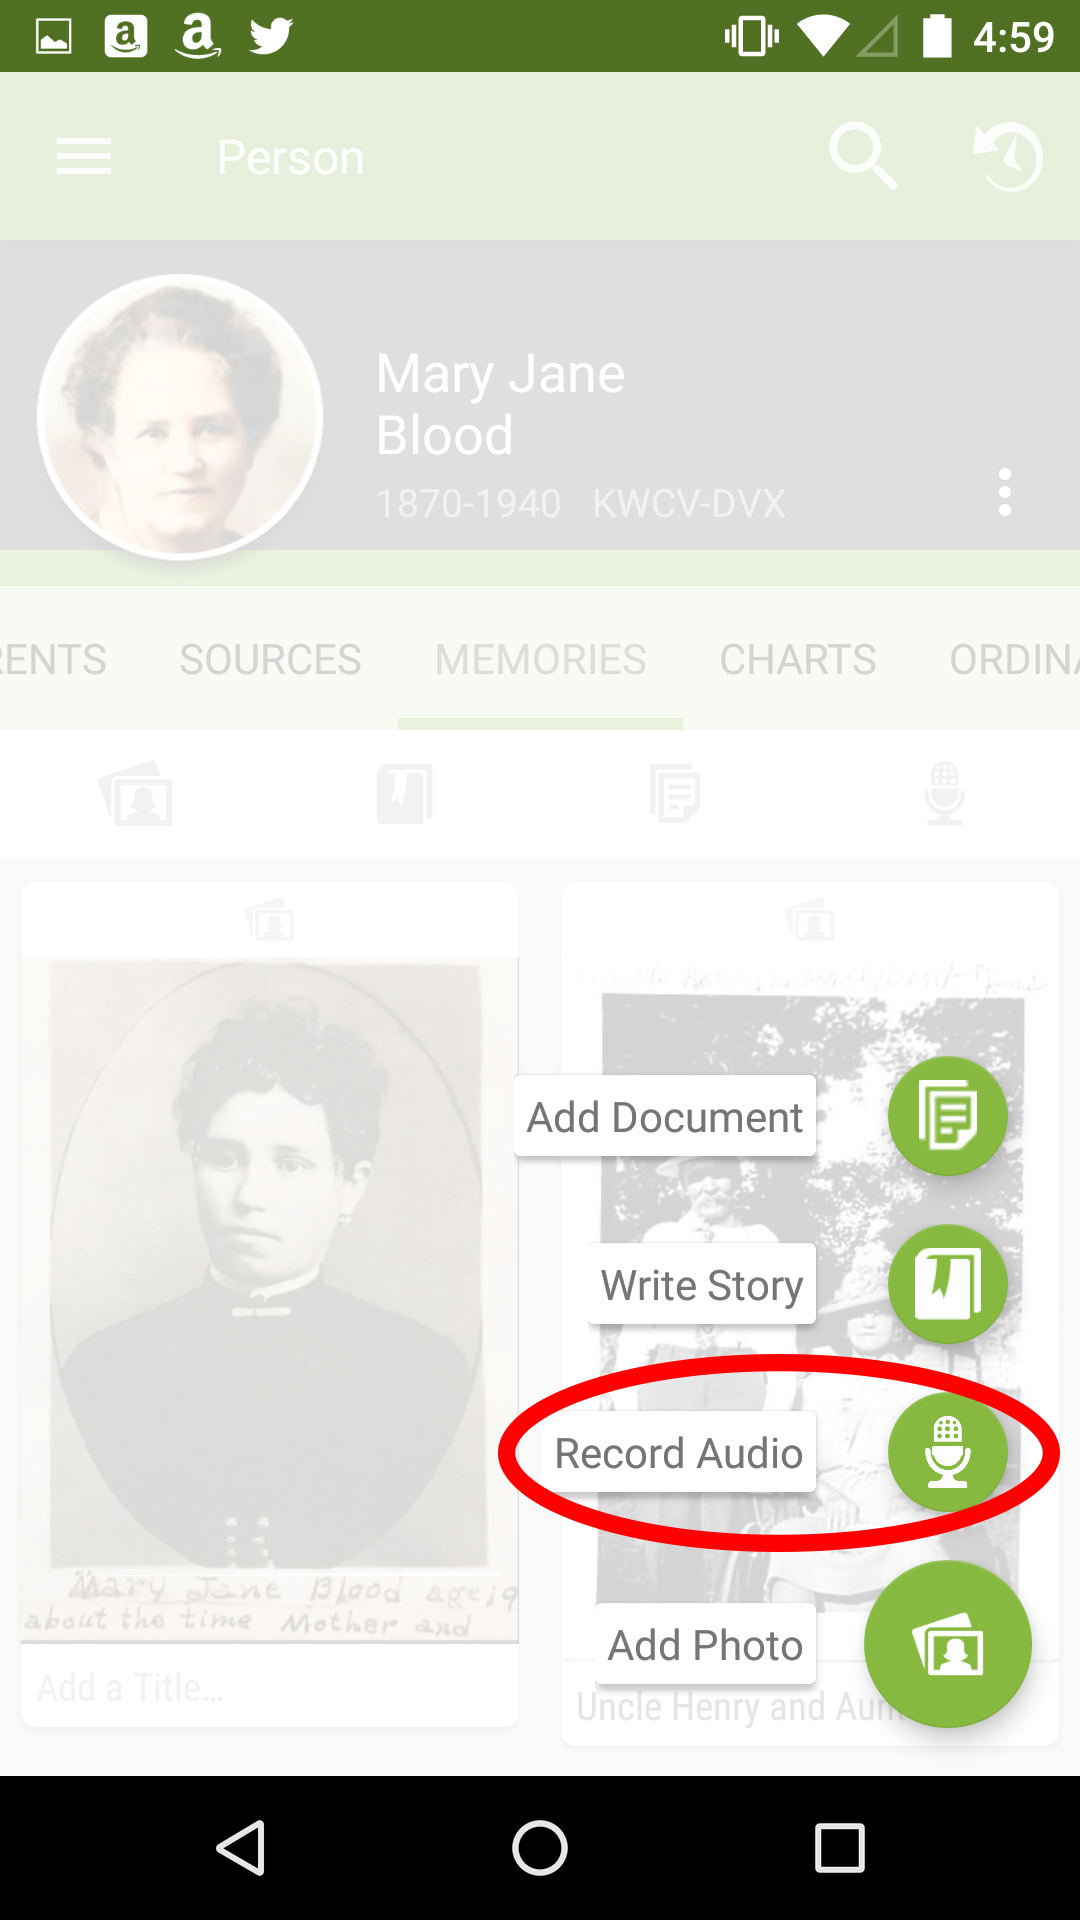 Why you should try the FamilySearch Memories audio recording feature.